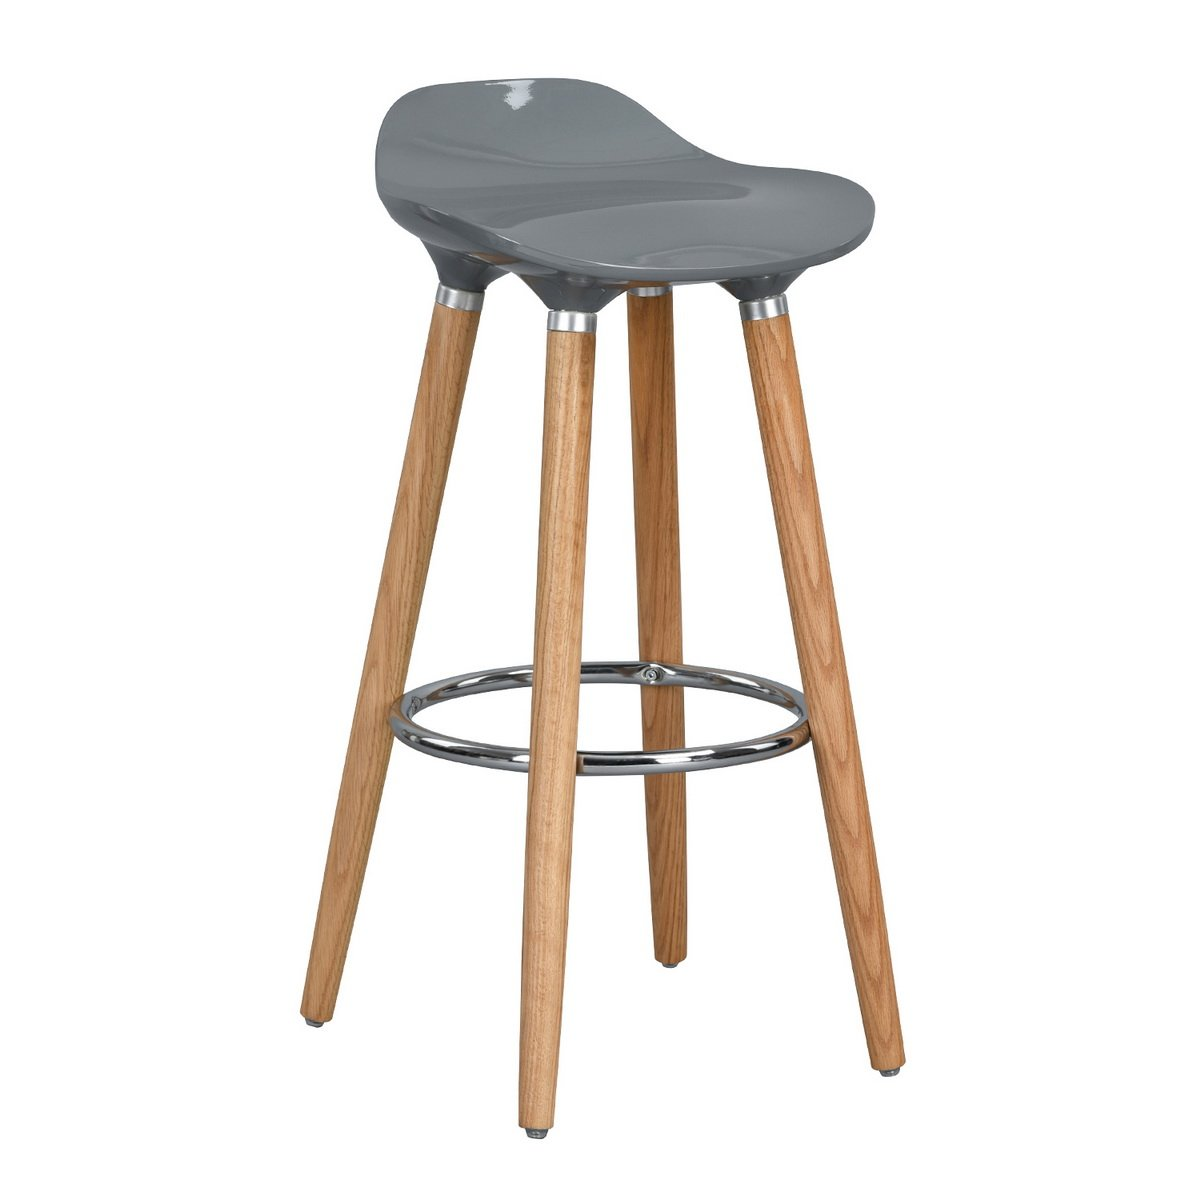 Homycasa Set of 2 Dining Chair, Barstool, Bar Chairs without adjustable, Wooden Bar Stools, Grey Homy Casa Inc.